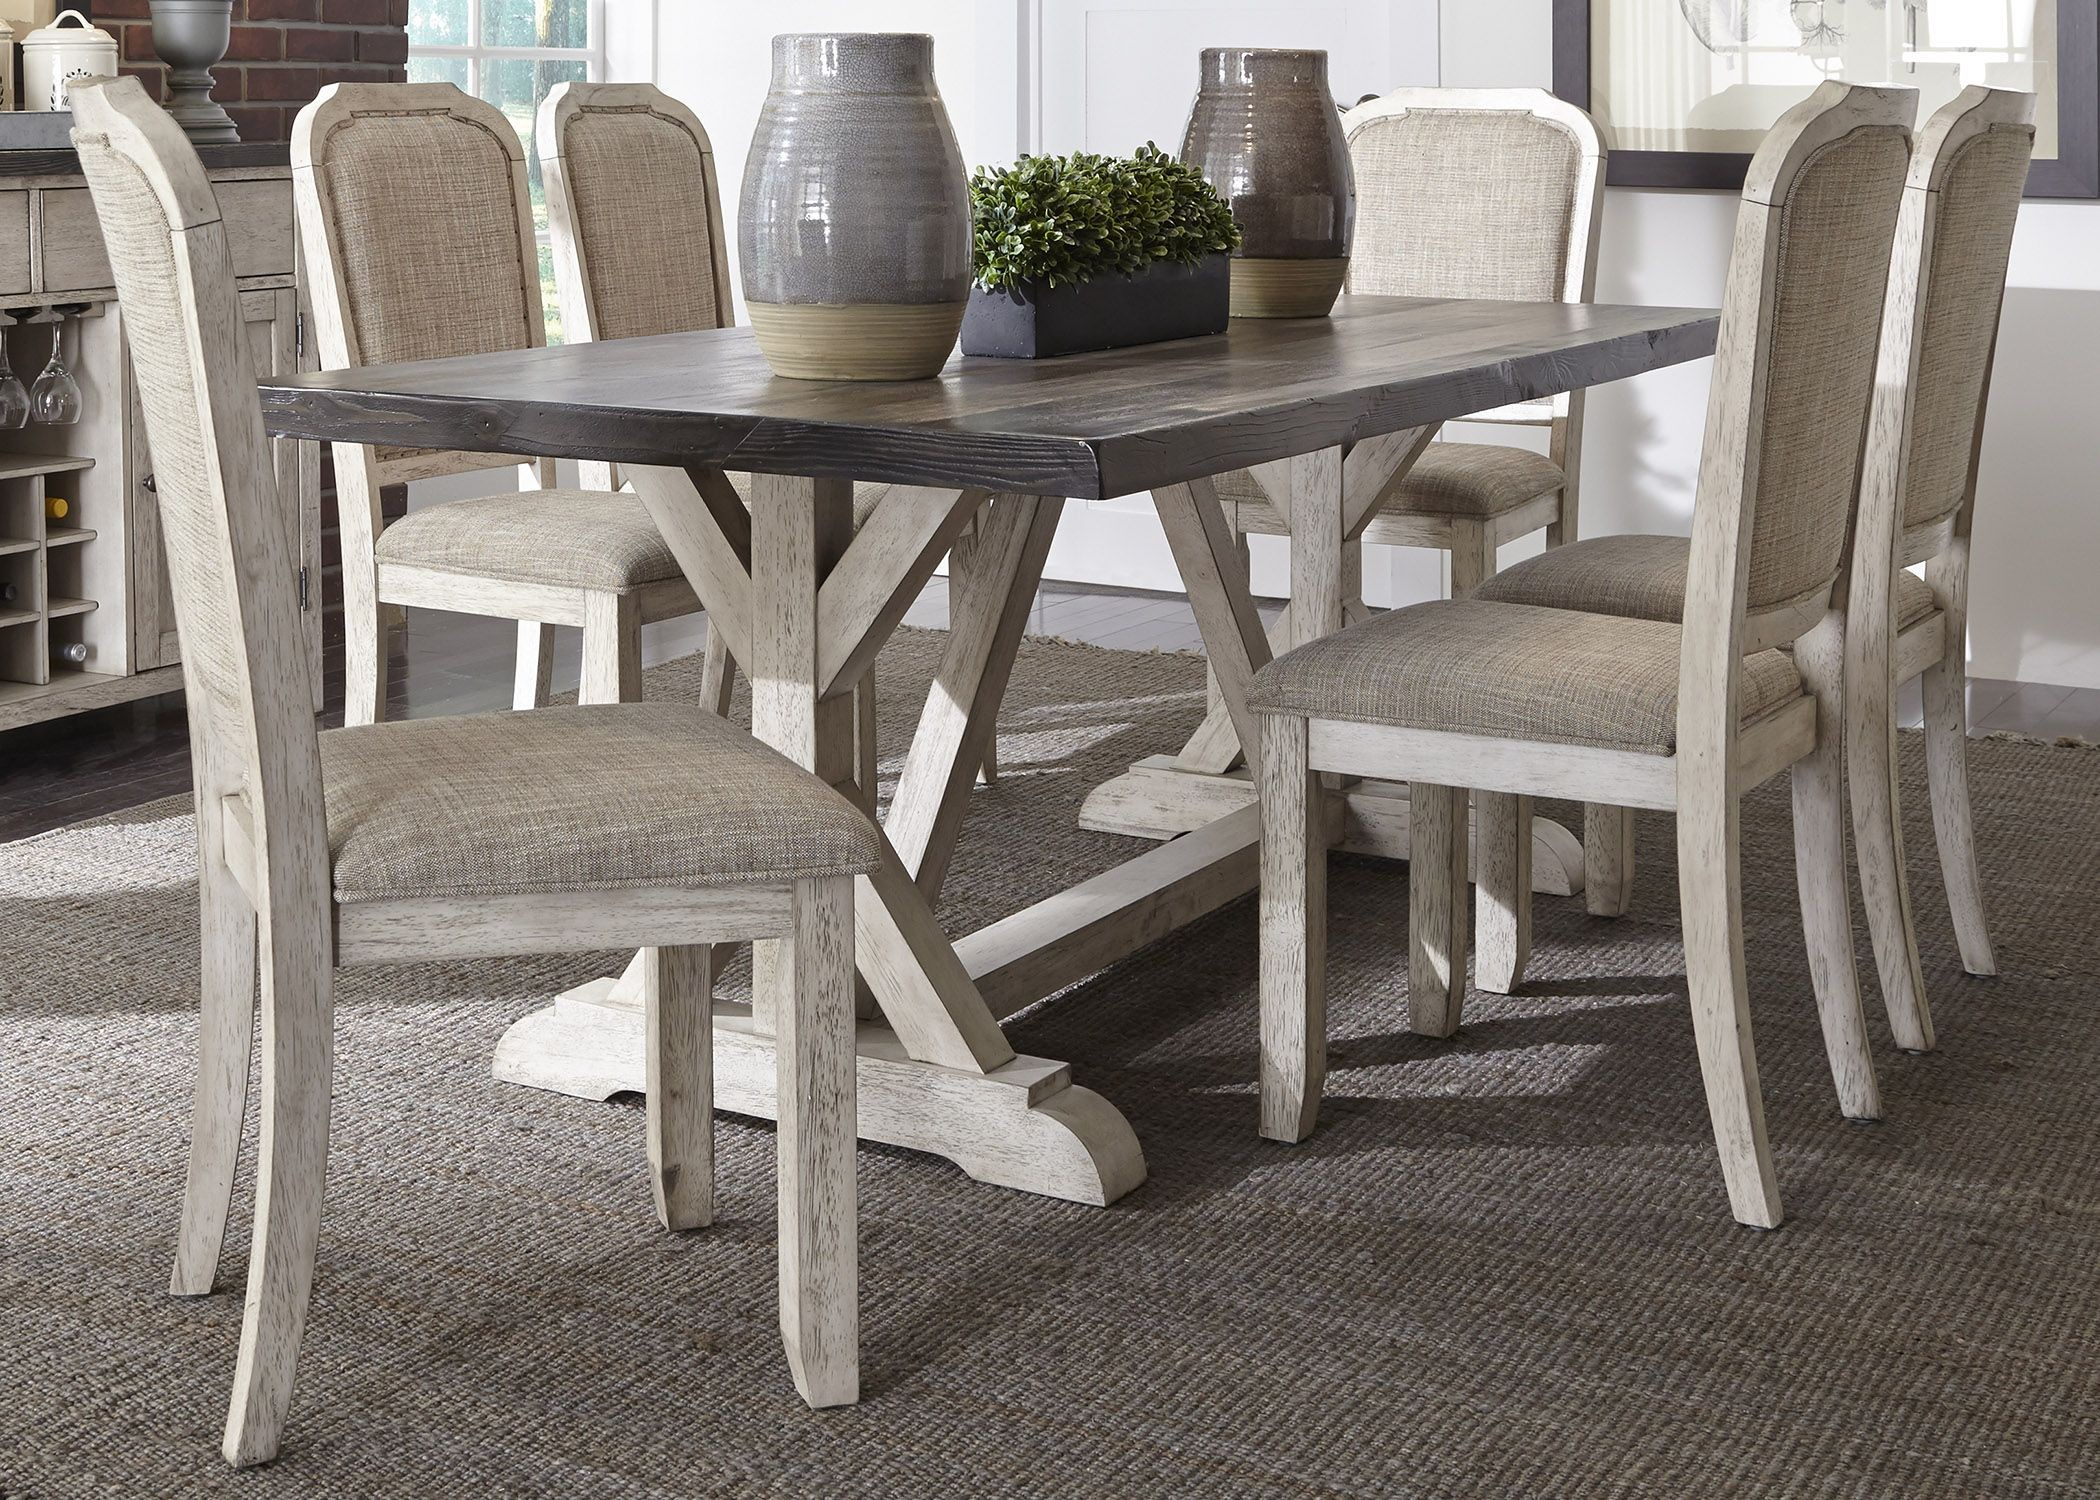 Dining Tables Rustic: Willowrun Rustic White Trestle Dining Table, 619-T3878